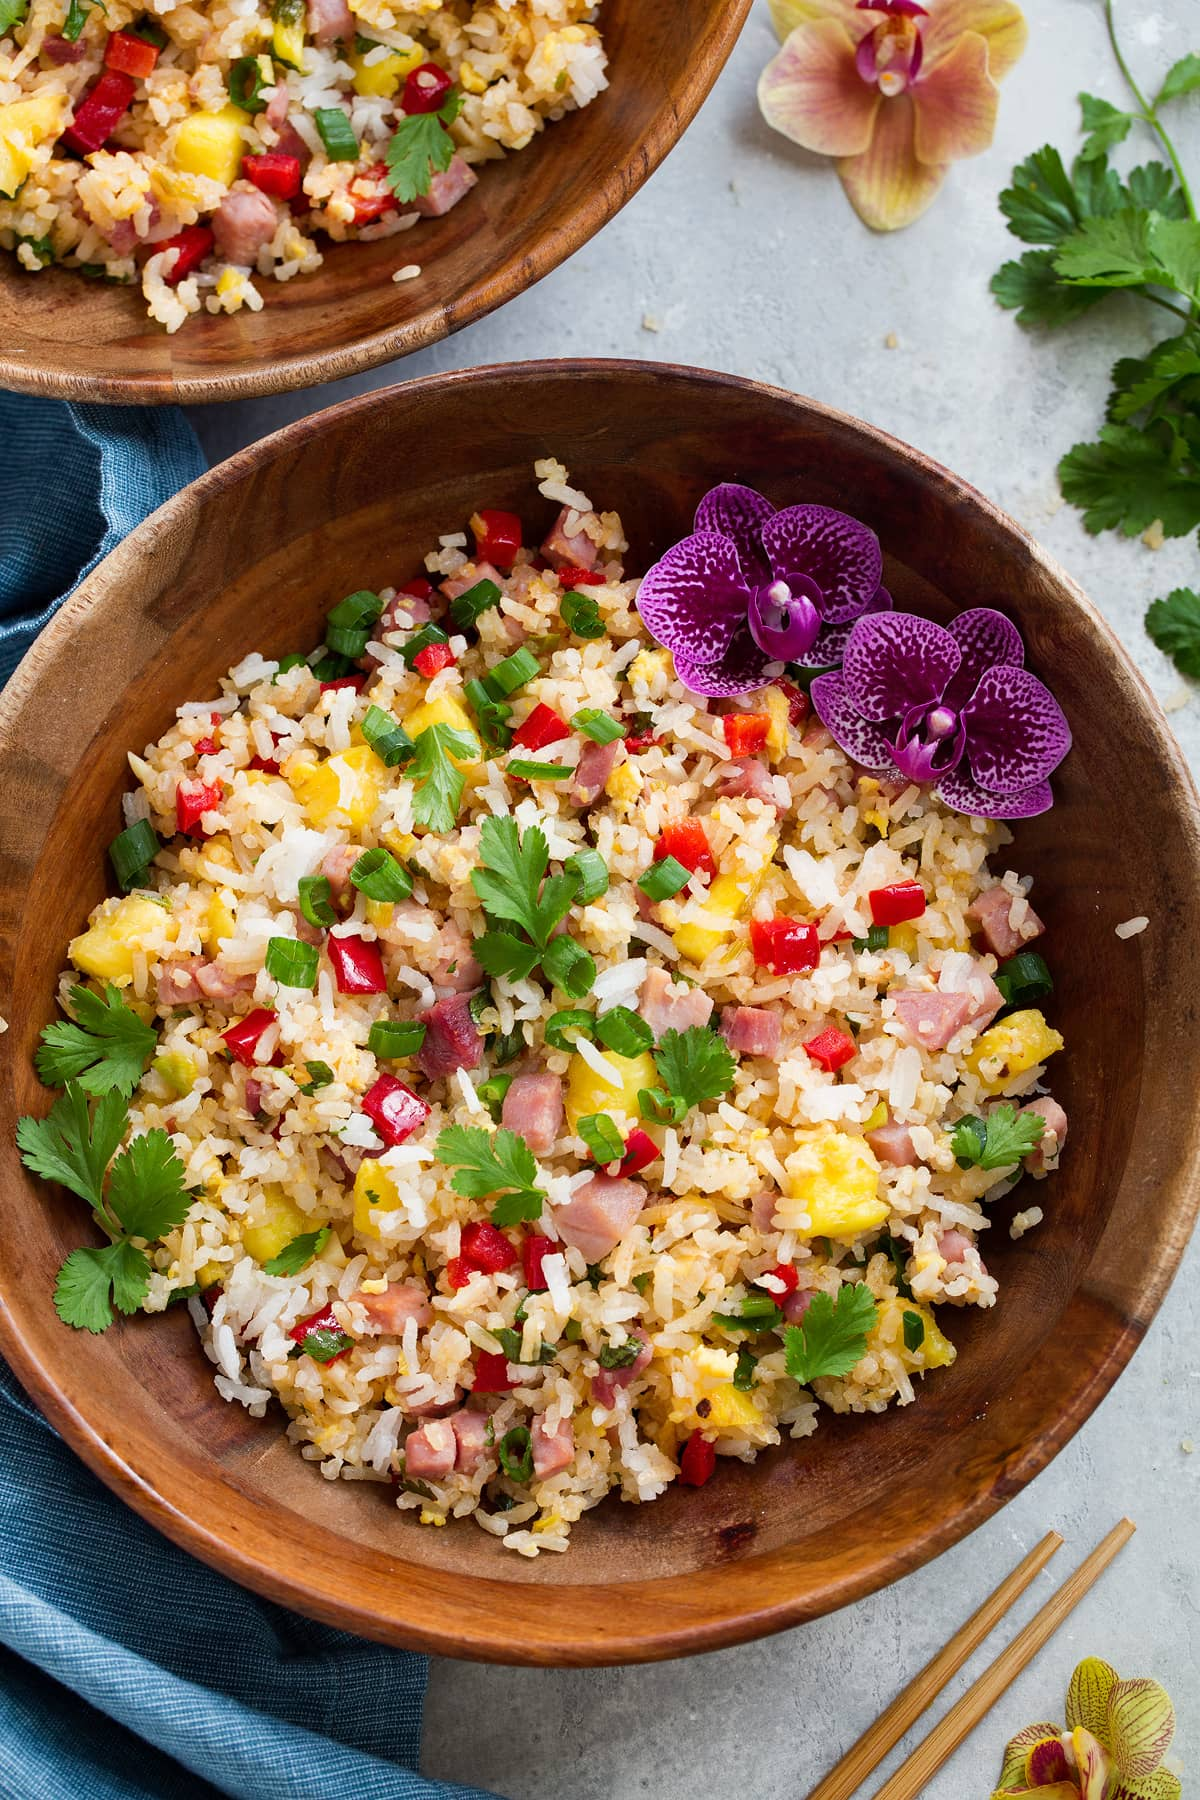 Overhead image of hawaiian fried rice in a bowl.